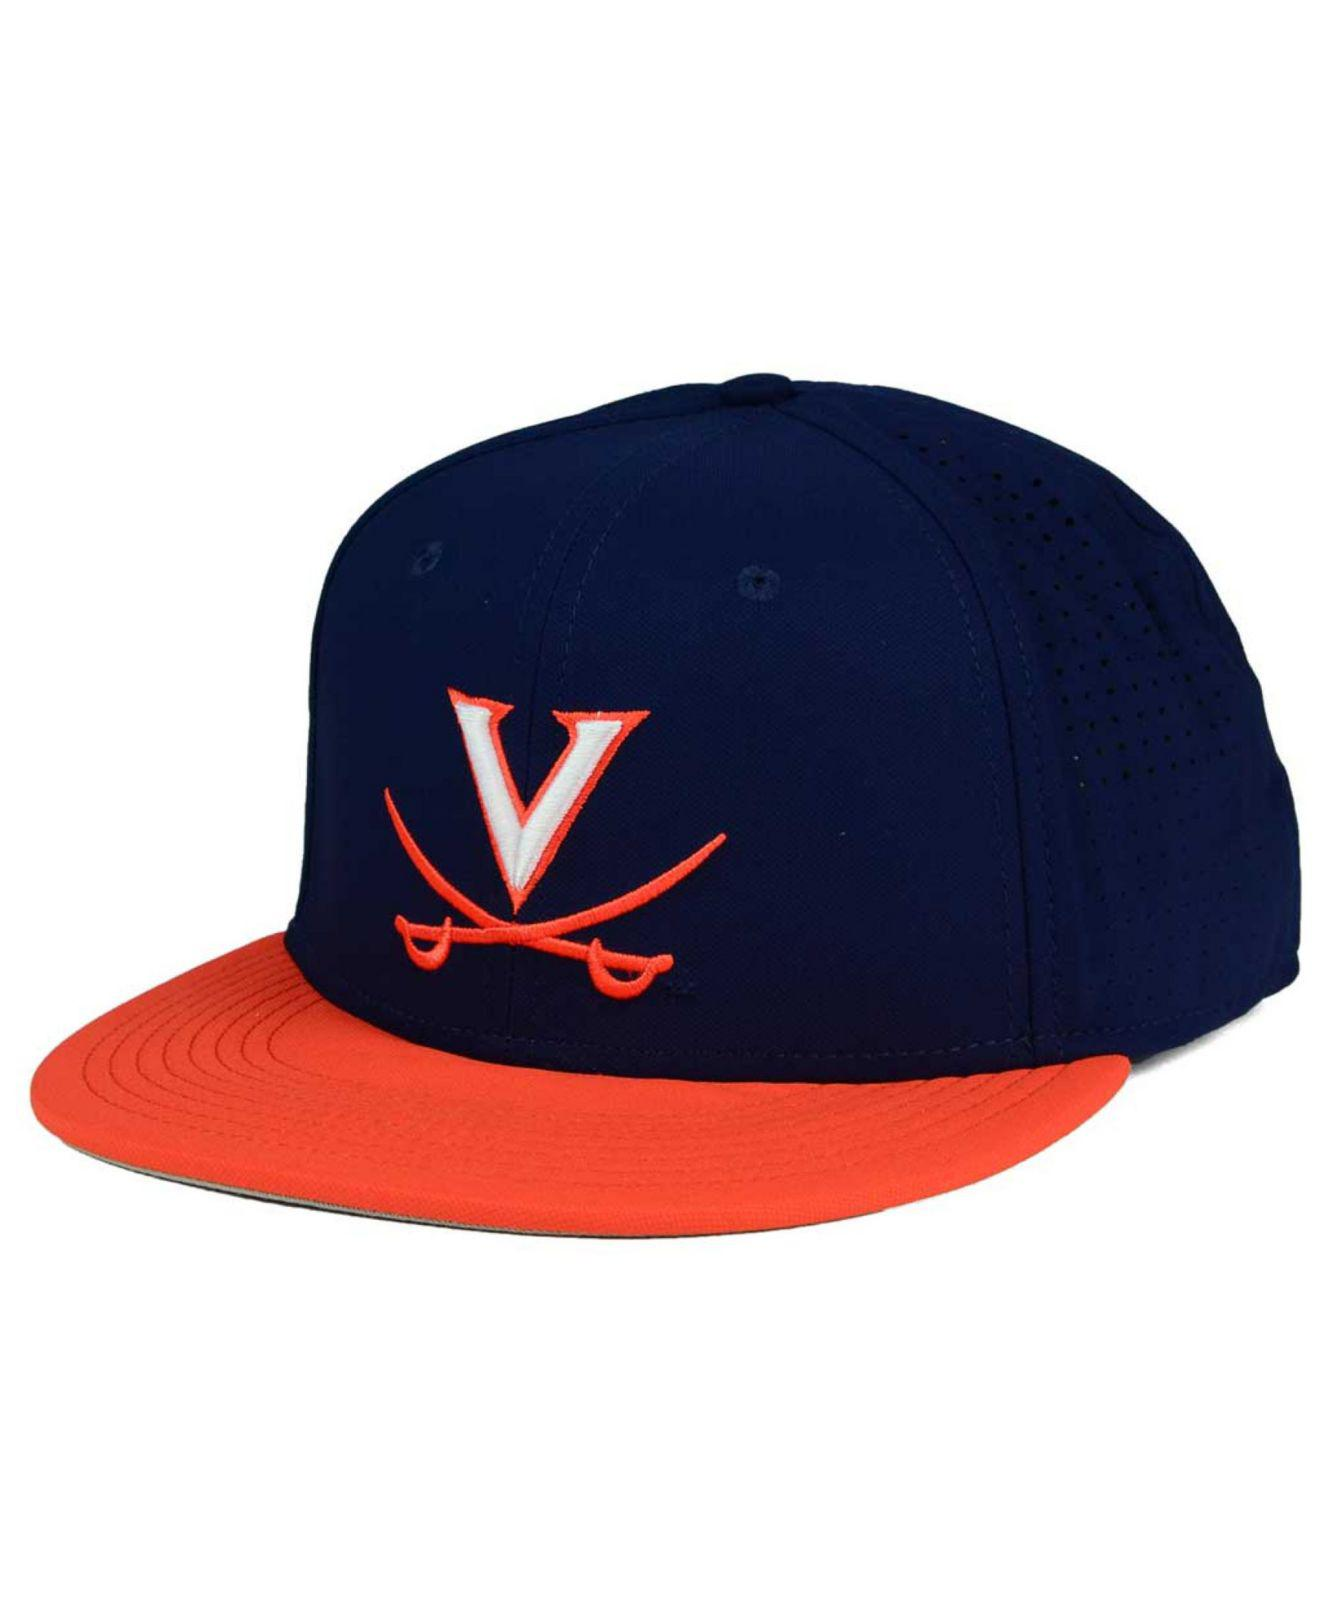 c756e38e7cc4f Lyst - Nike Virginia Cavaliers True Vapor Fitted Cap in Red for Men